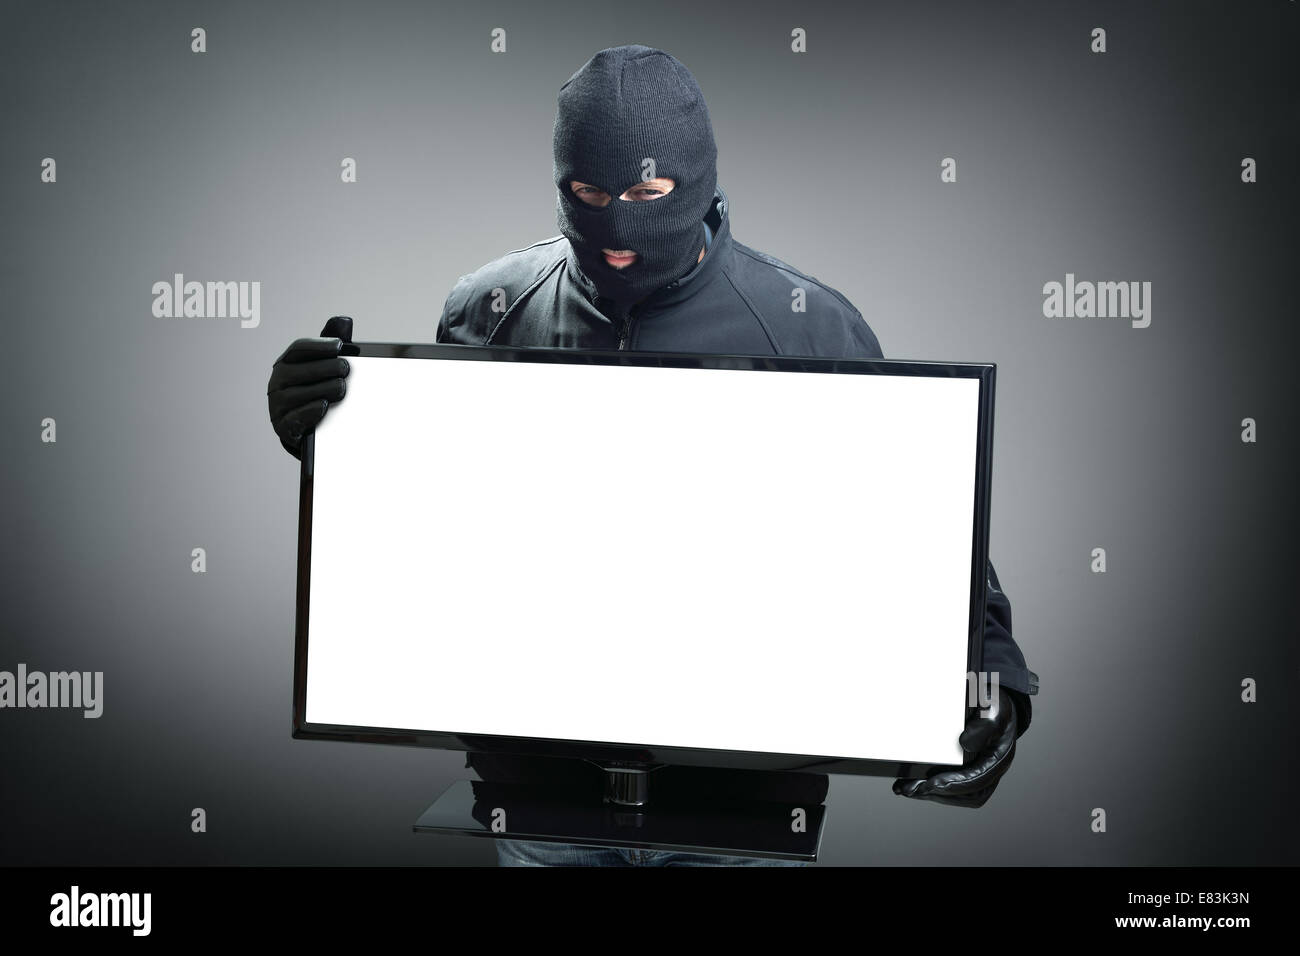 Thief stealing computer monitor - Stock Image